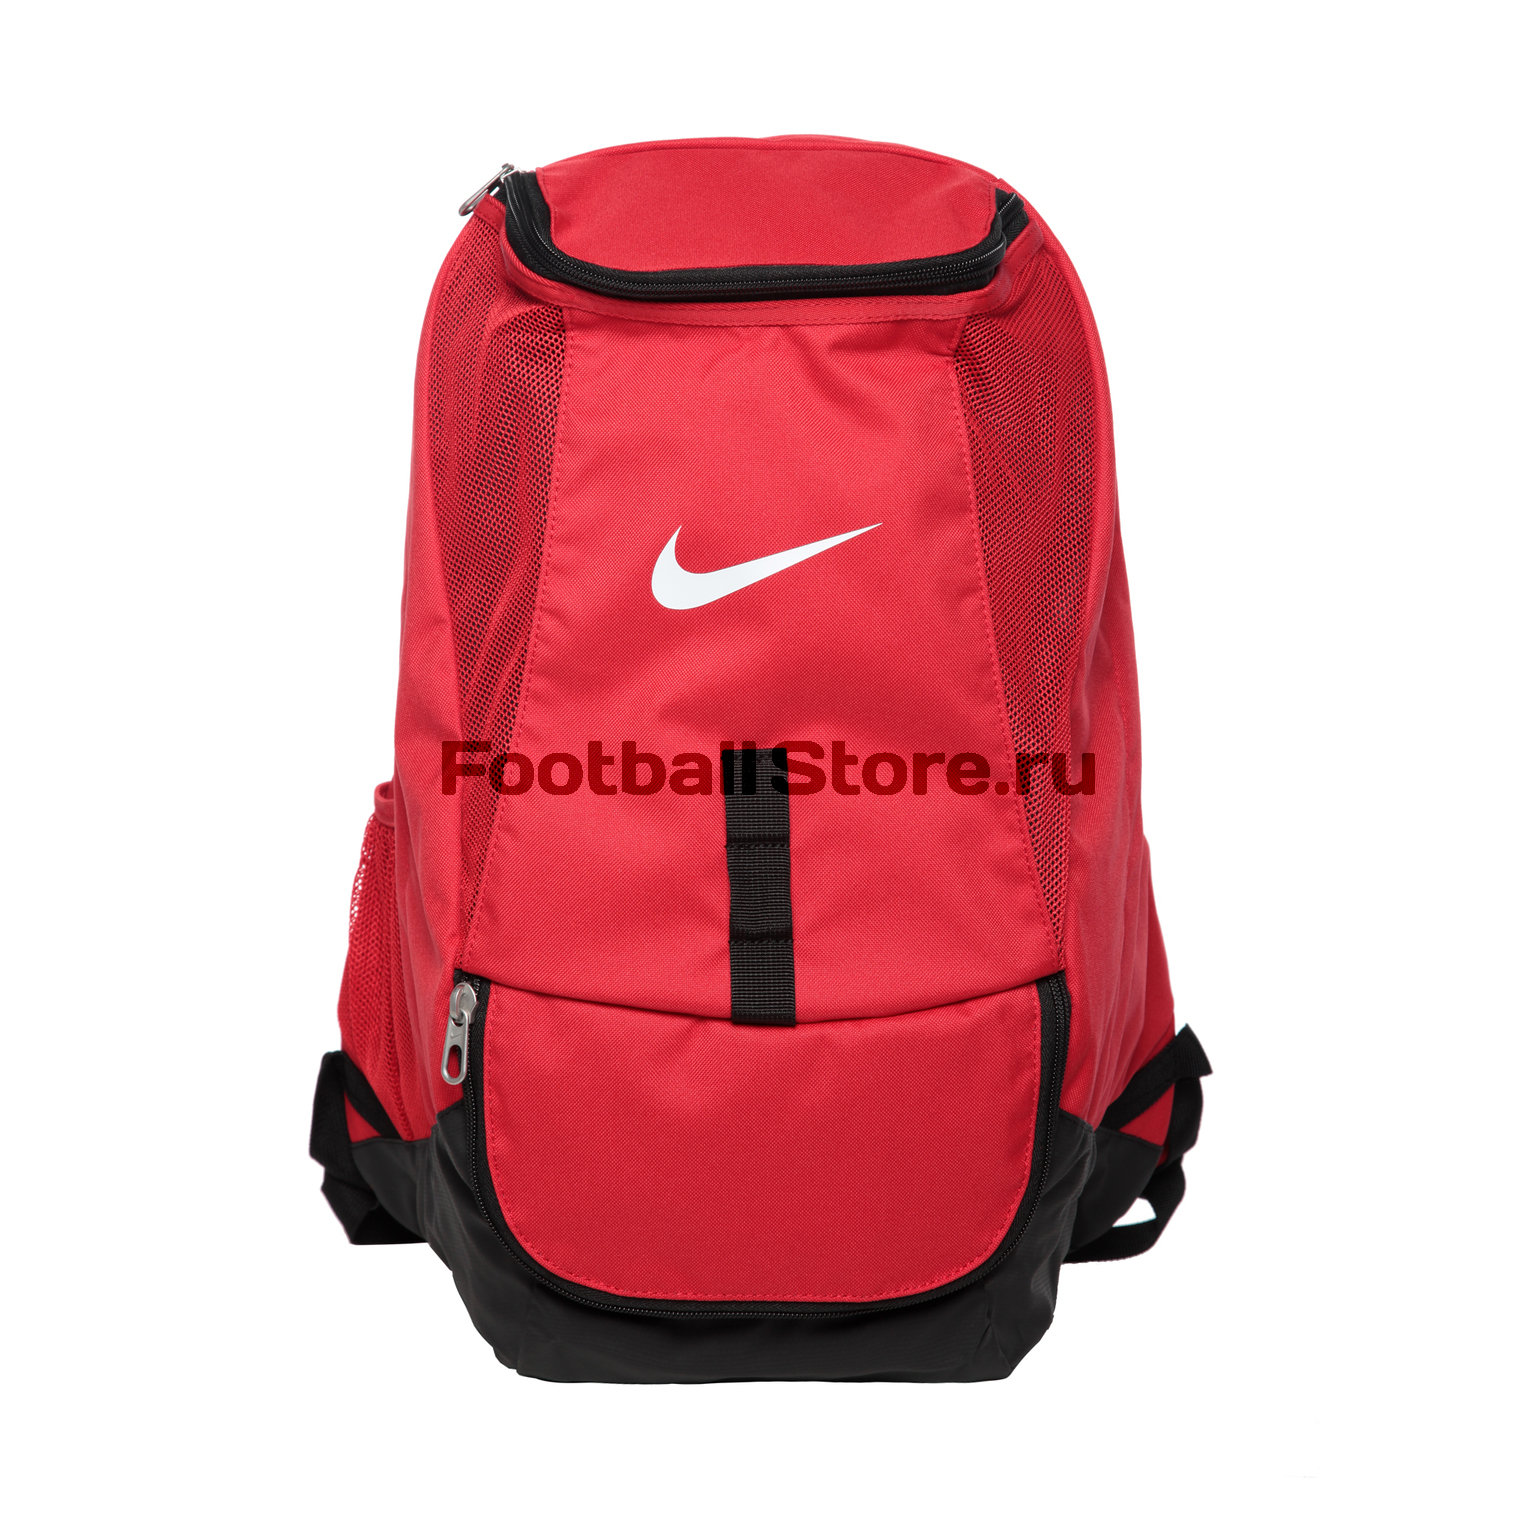 Сумки/Рюкзаки Nike Рюкзак Nike Club Team Swoosh BackPack BA5190-657 рюкзак спортивный nike net prophet 2 0 backpack cargo navy